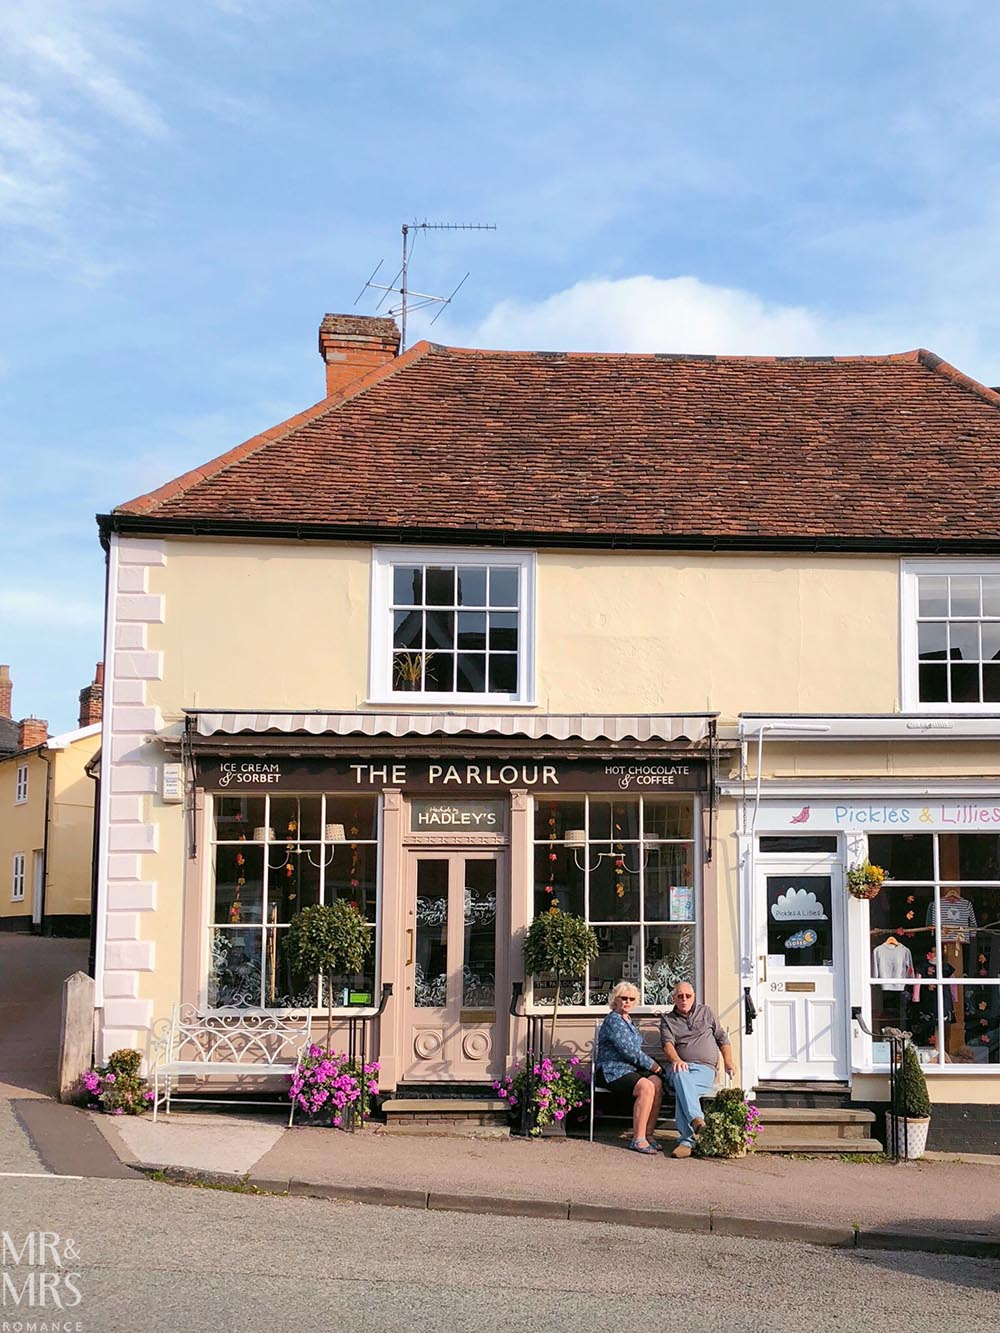 Out of London - Lavenham, Suffolk - Britain's finest Medieval village - Hadley's Ice Cream Parlour